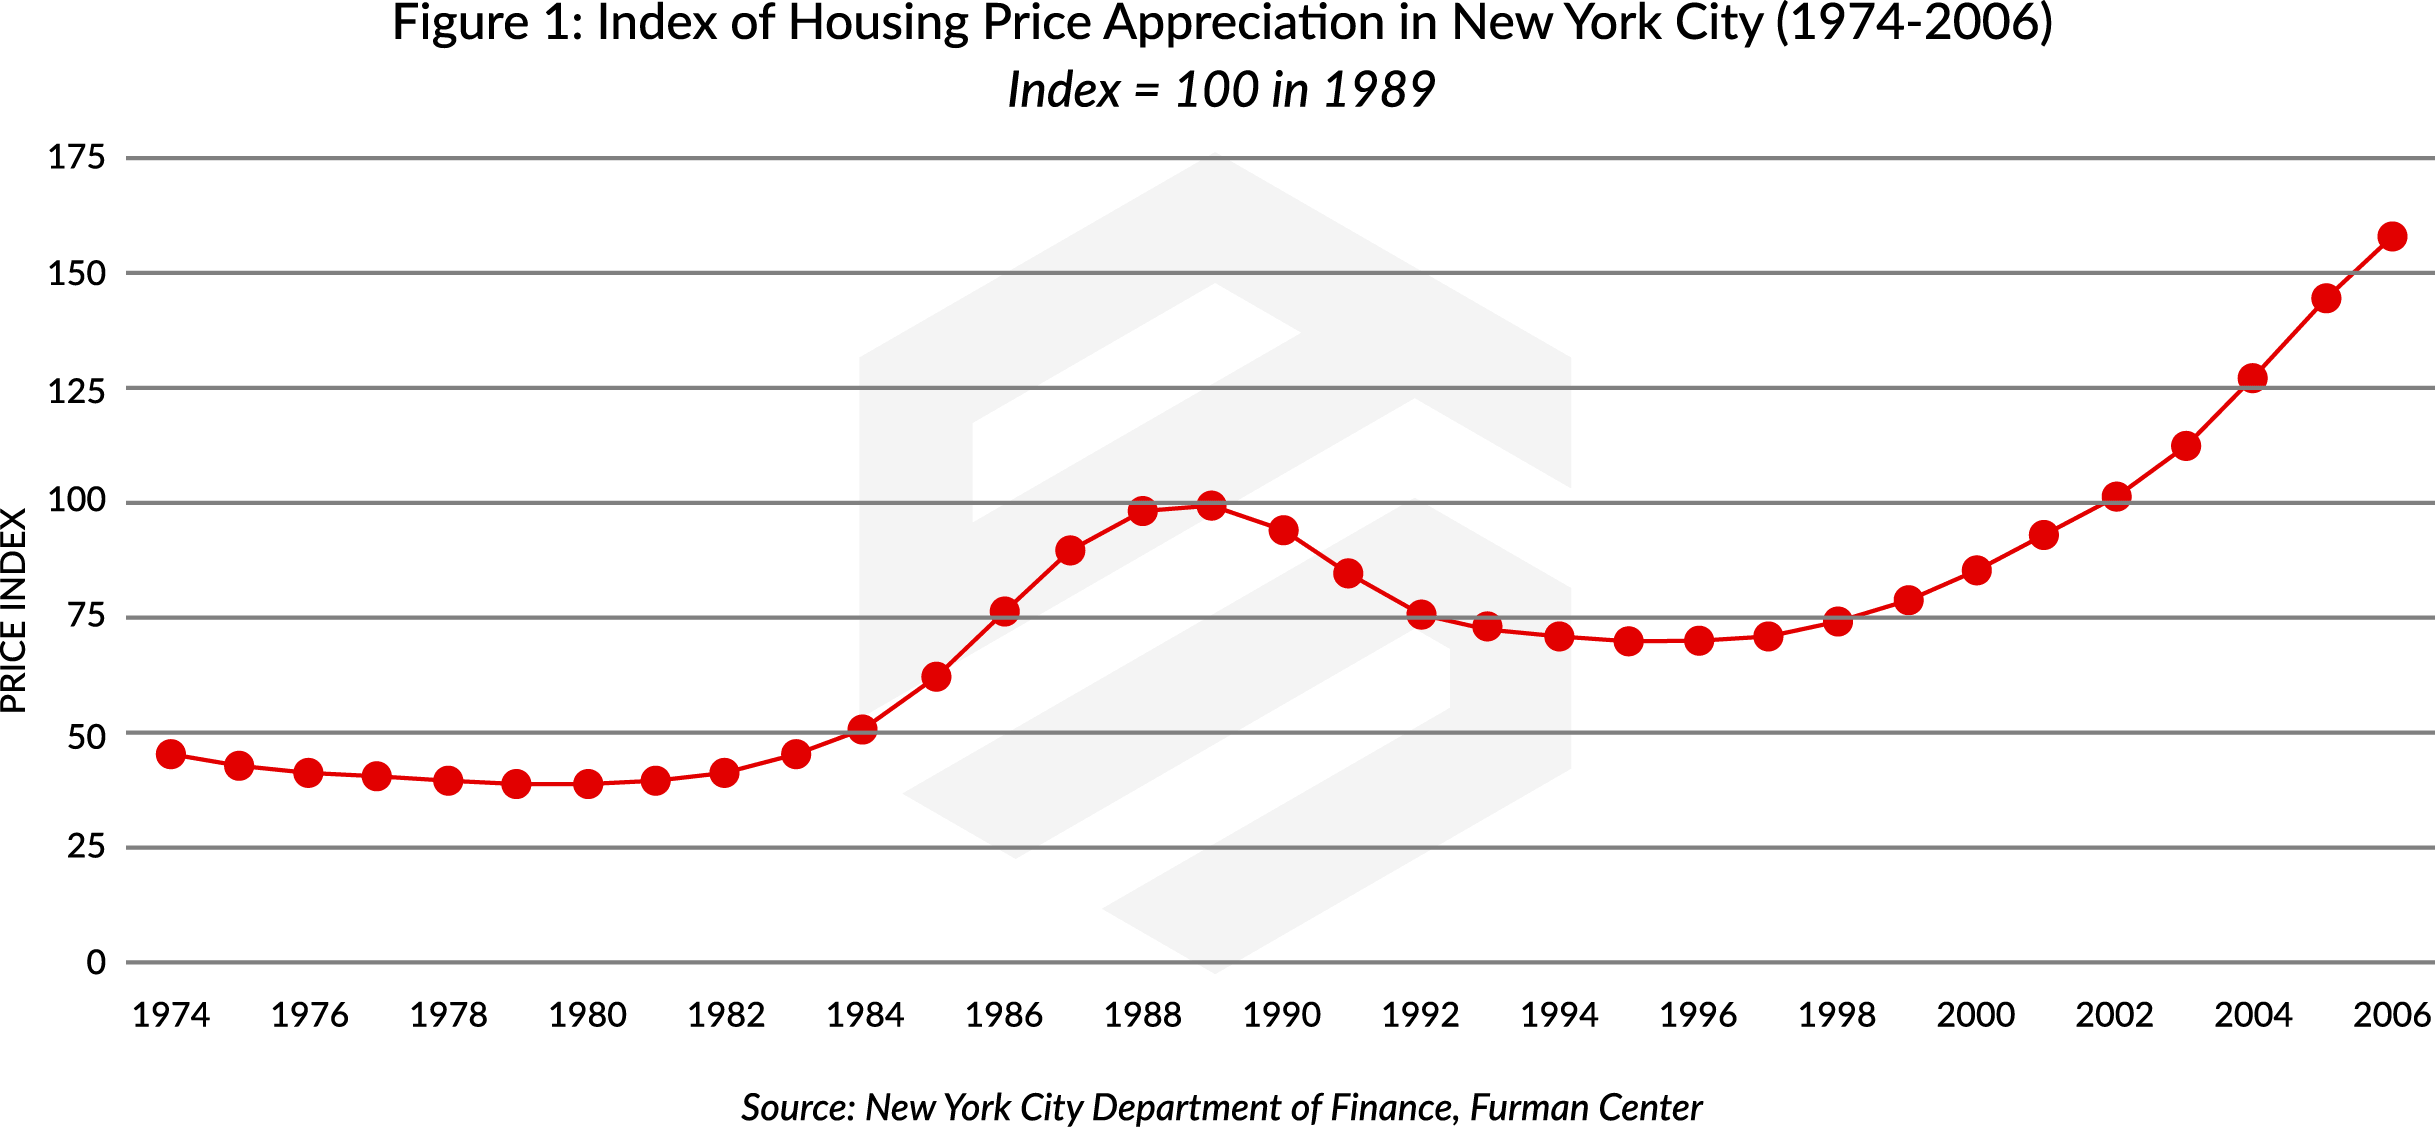 Index of Housing Price Appreciation in New York City Compared to Domain Names Valuation